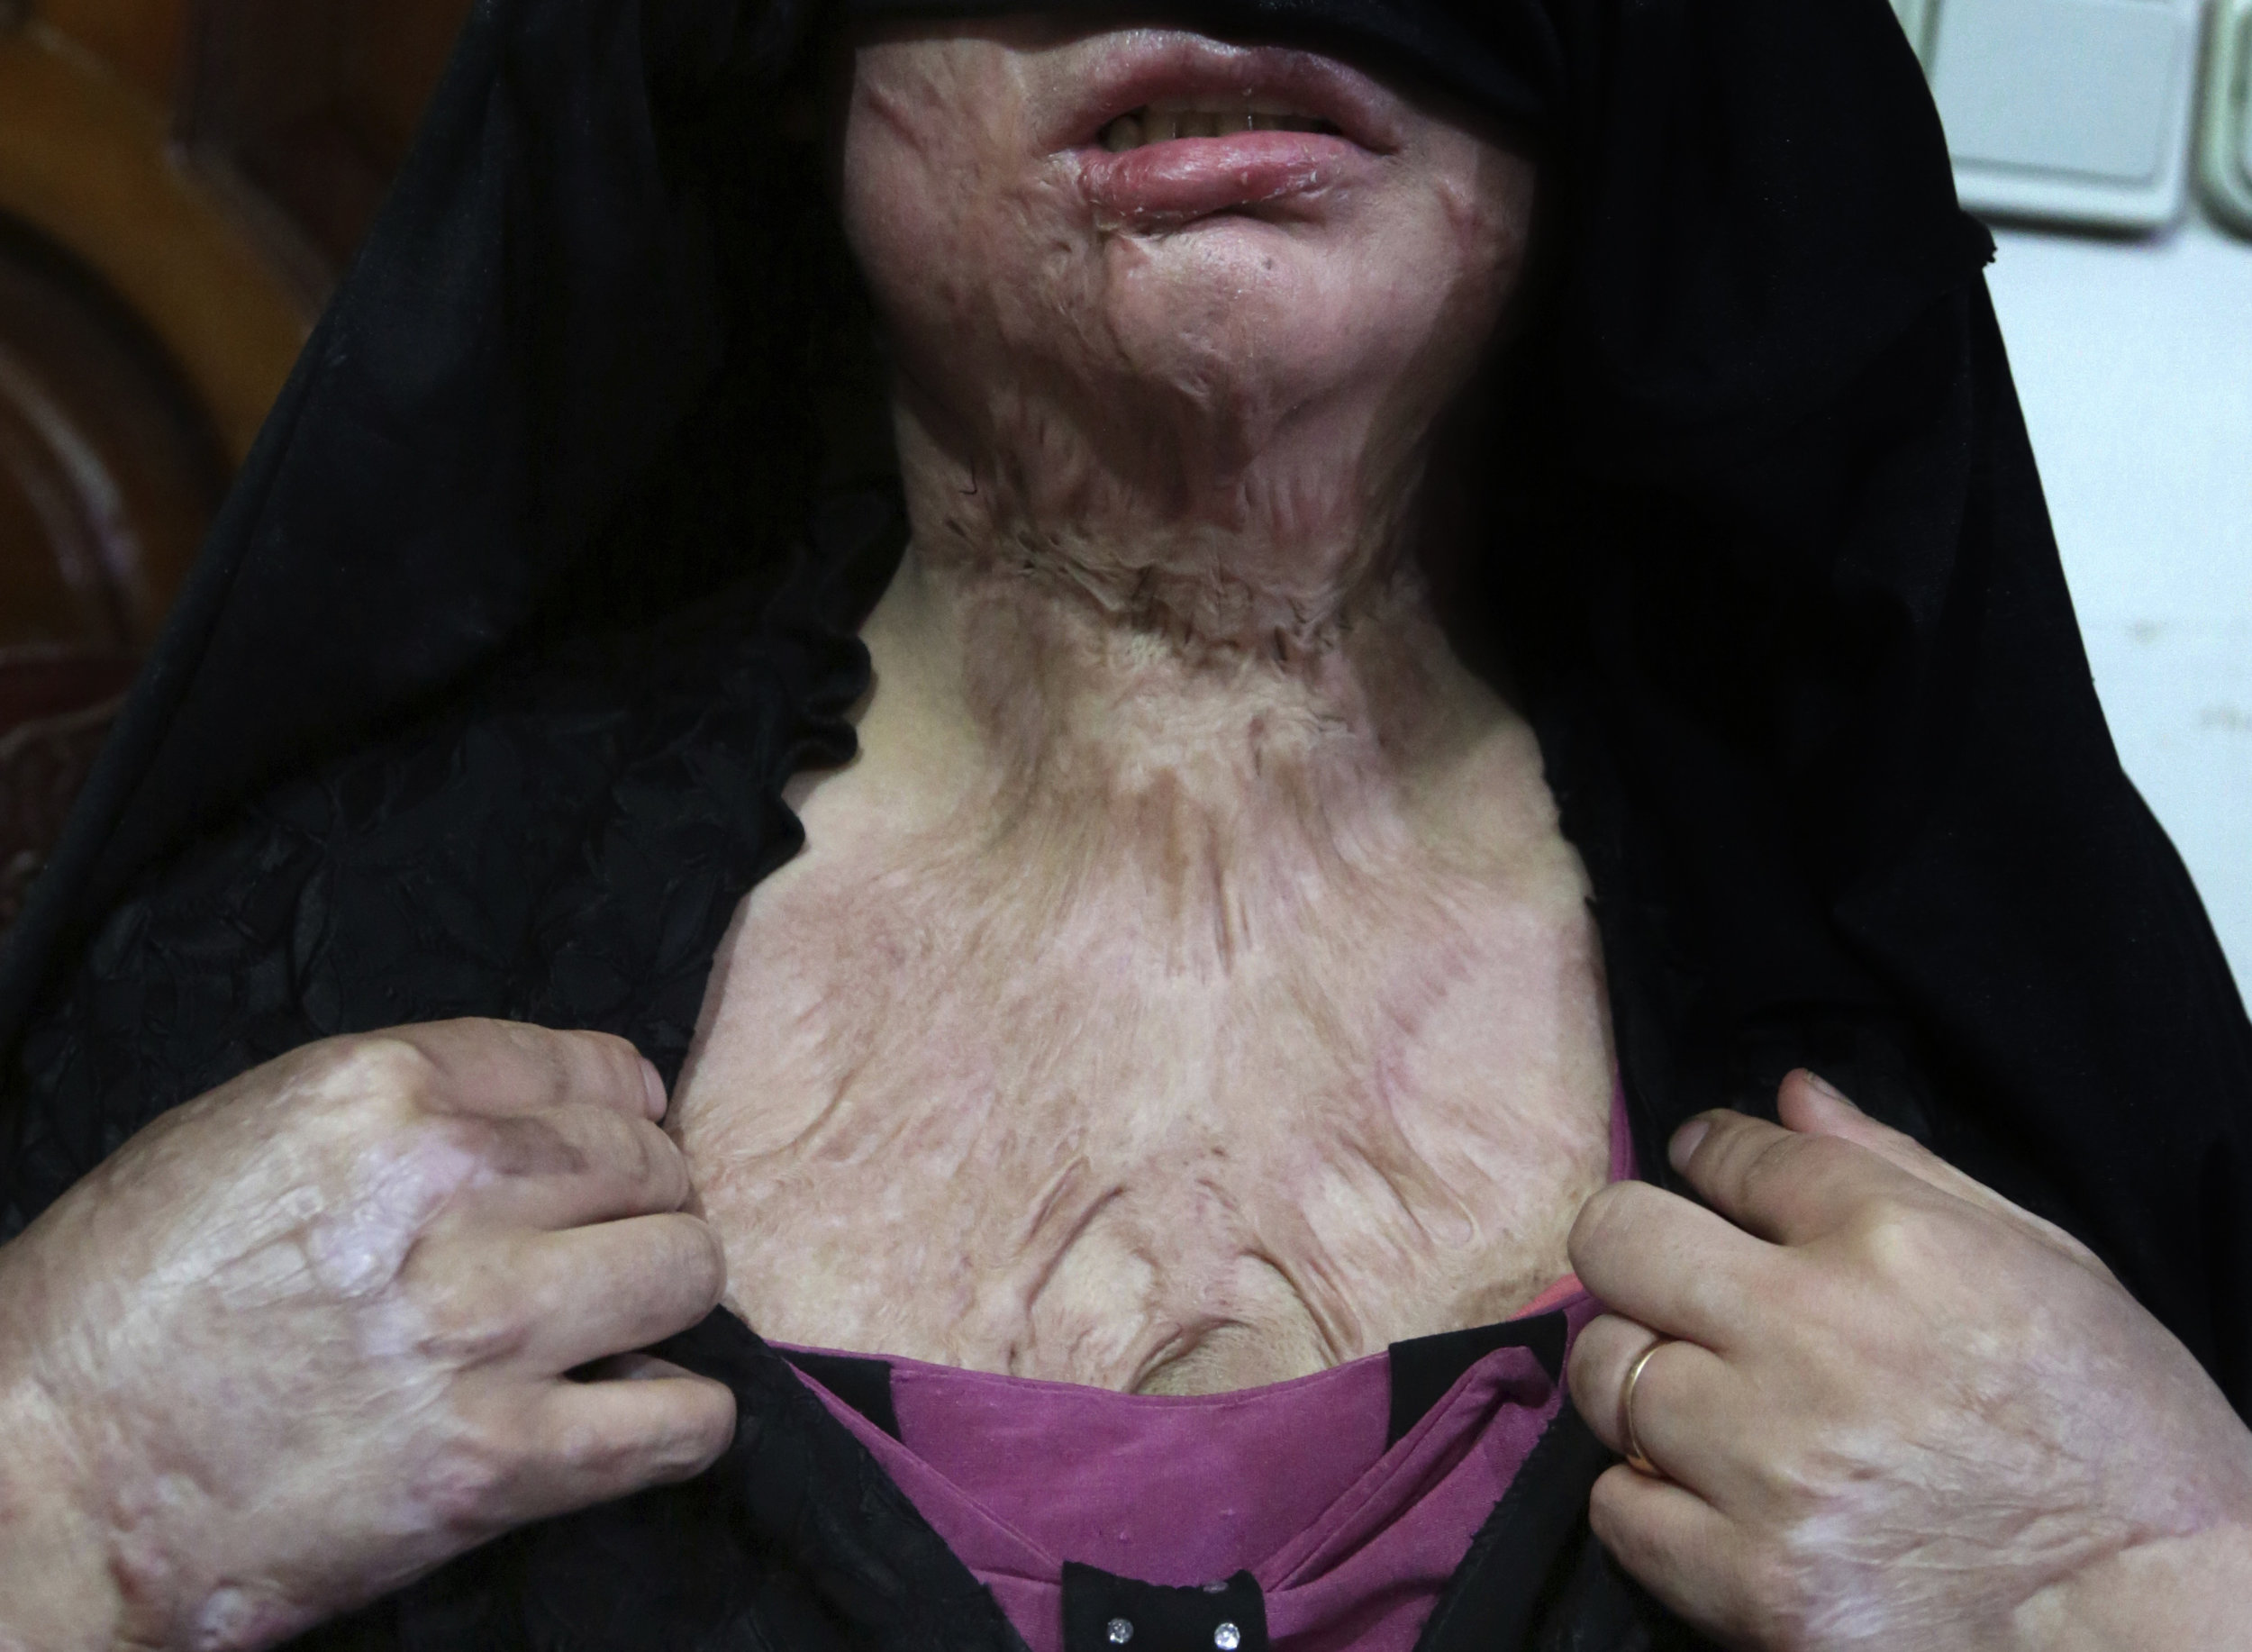 Khadeja, 18, who was burned by a pot of scalding hot water thrown by her husband, shows her wounds, at a women's shelter office in Herat, Afghanistan on Monday, Feb. 18, 2019. (AP Photo/Rahmat Gul)